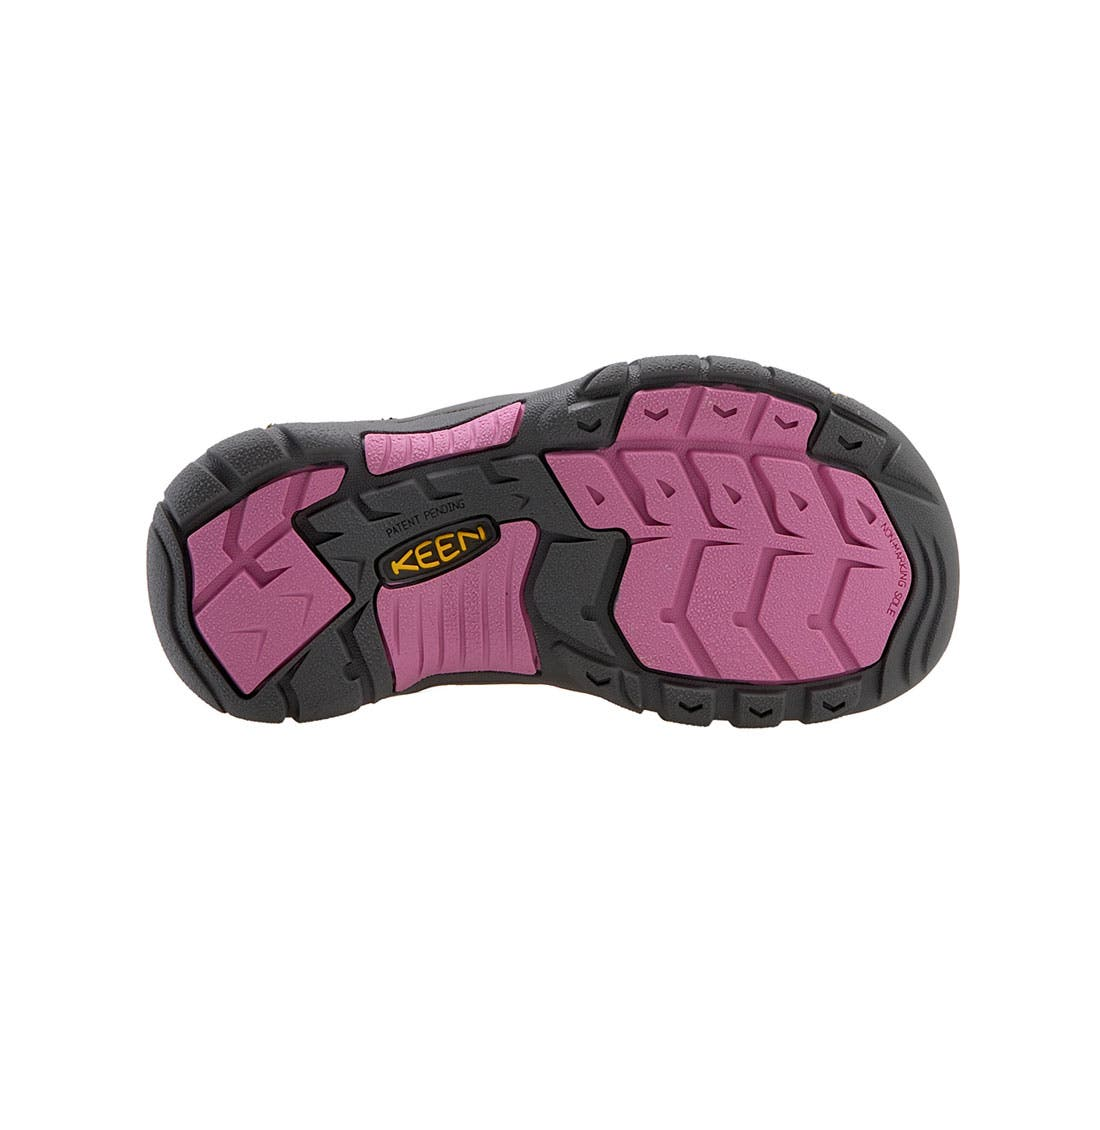 Alternate Image 4  - Keen 'Newport H2' Waterproof Sandal (Toddler, Little Kid & Big Kid)